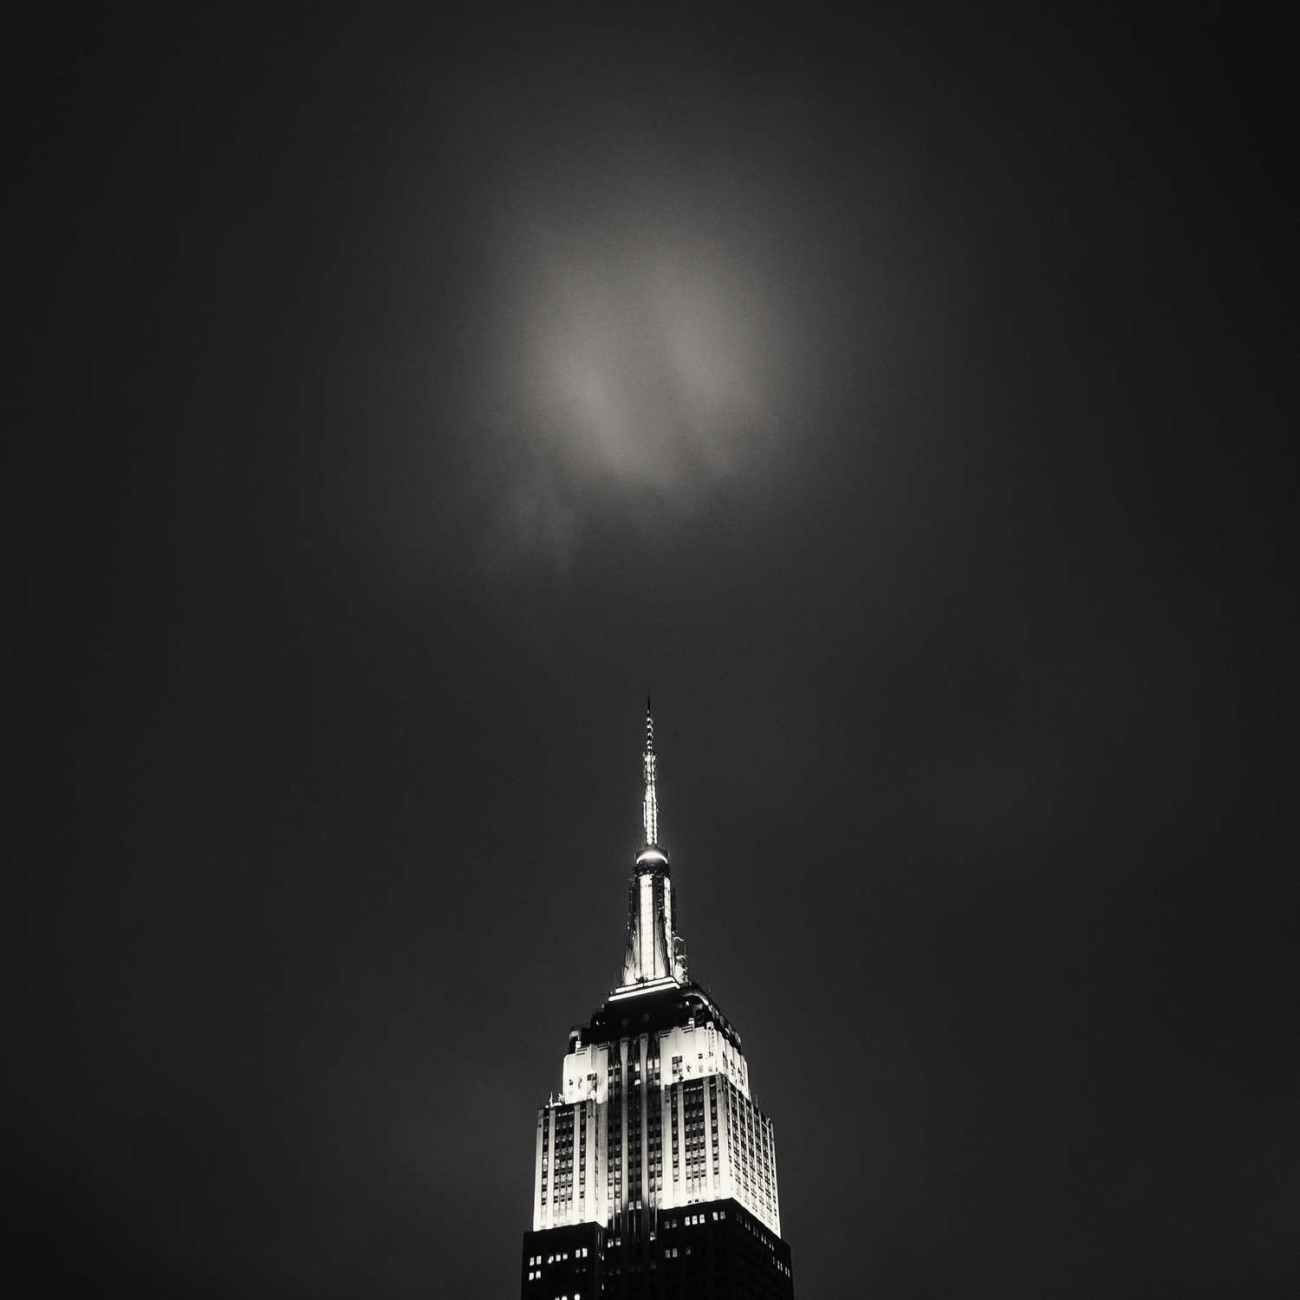 Giving up the light, New York, 2014